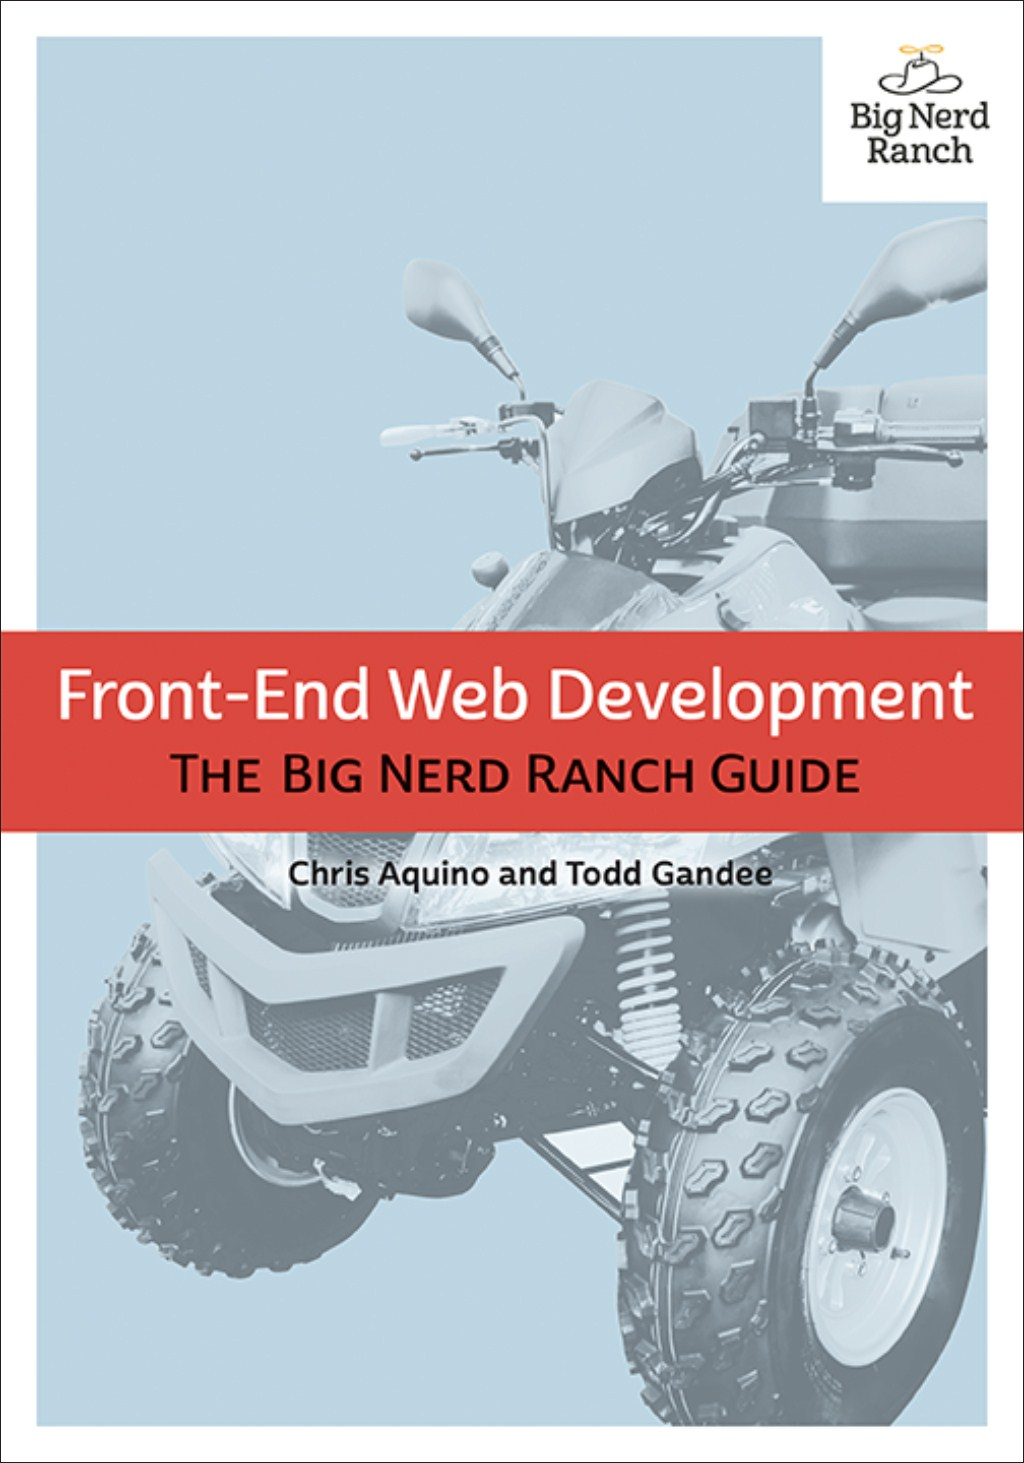 Front-End Web Development: The Big Nerd Ranch Guide